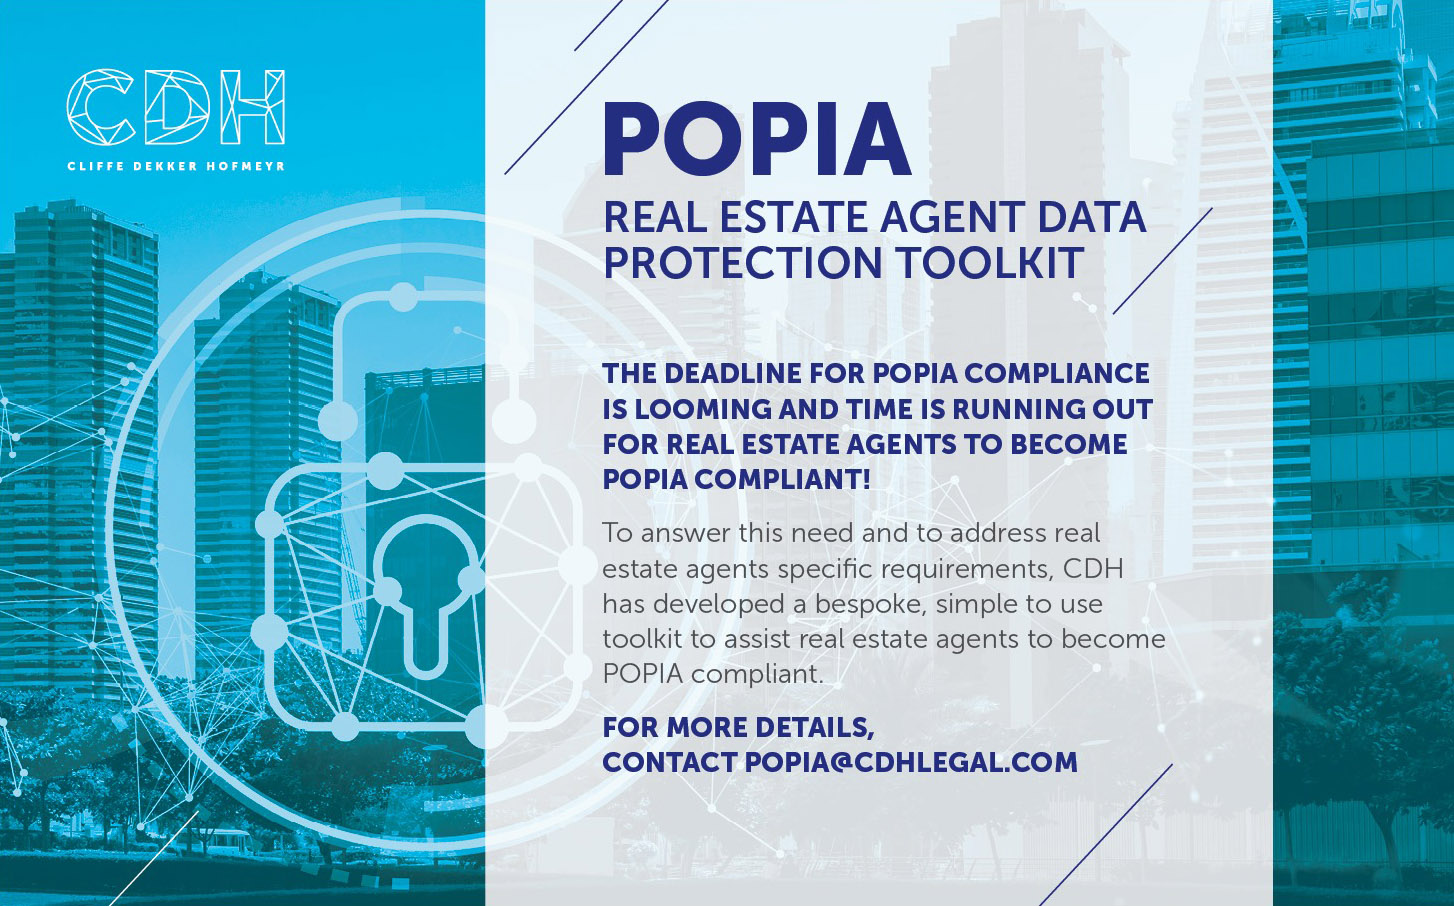 POPIA - Real estate agent data protection toolkit